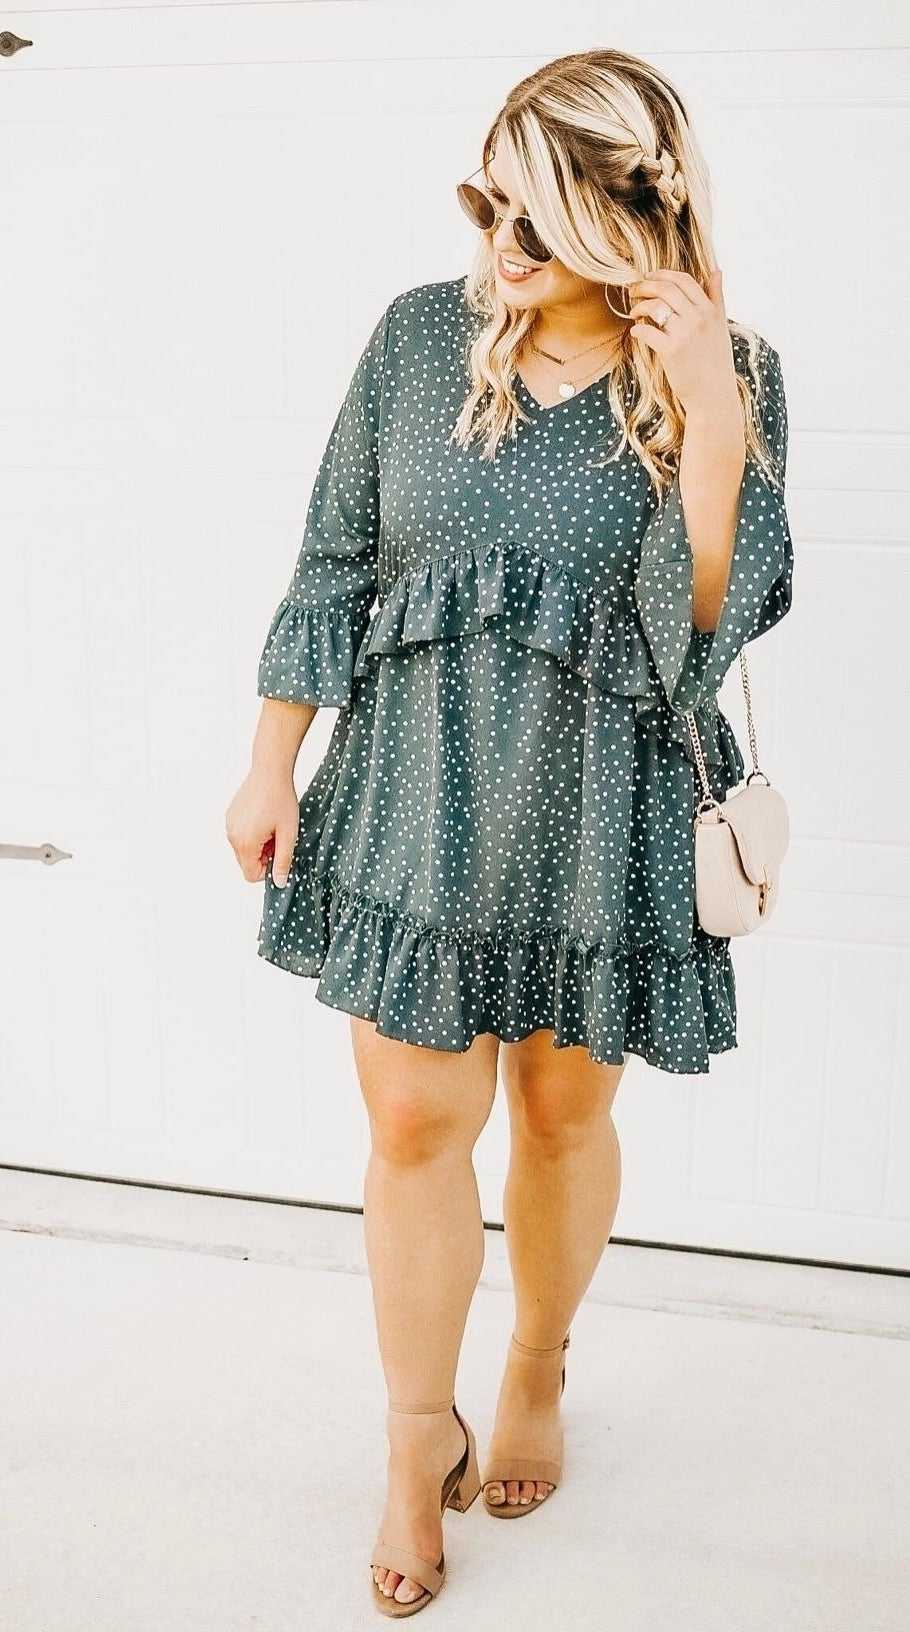 Reviewer wearing a sea foam colored polka dot dress